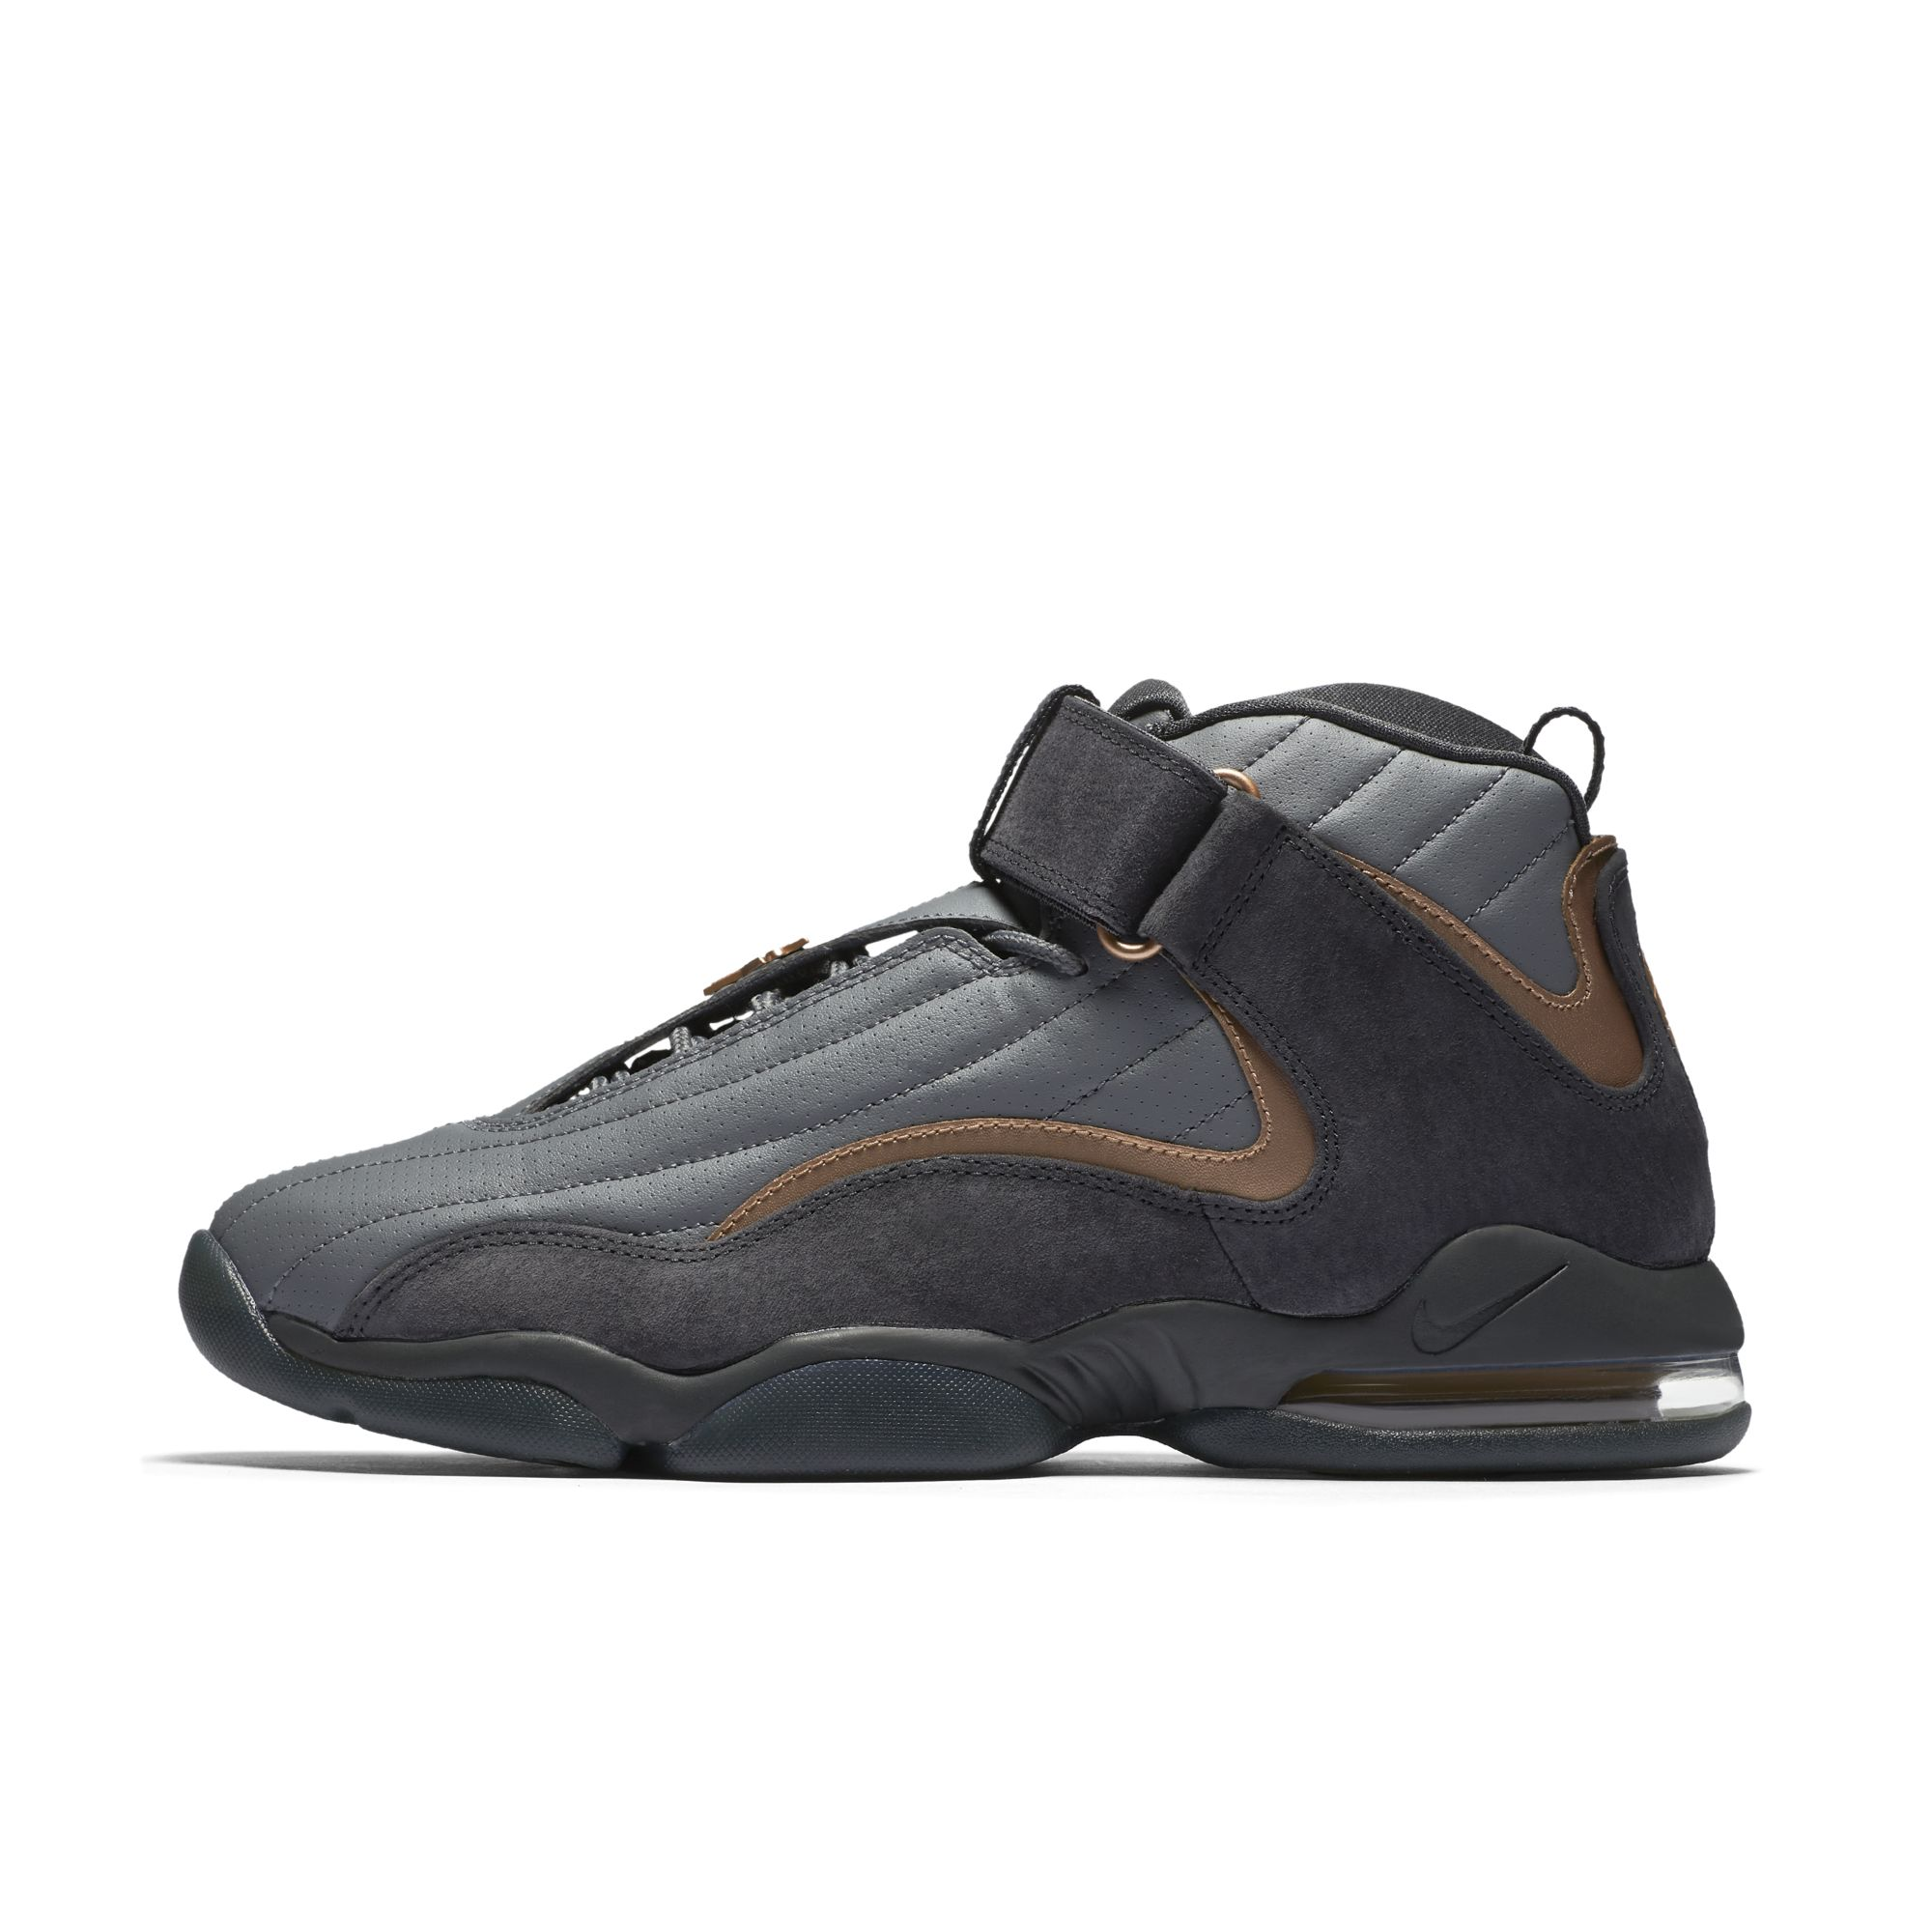 Nike Air Penny 4 Retro 'Copper' 1